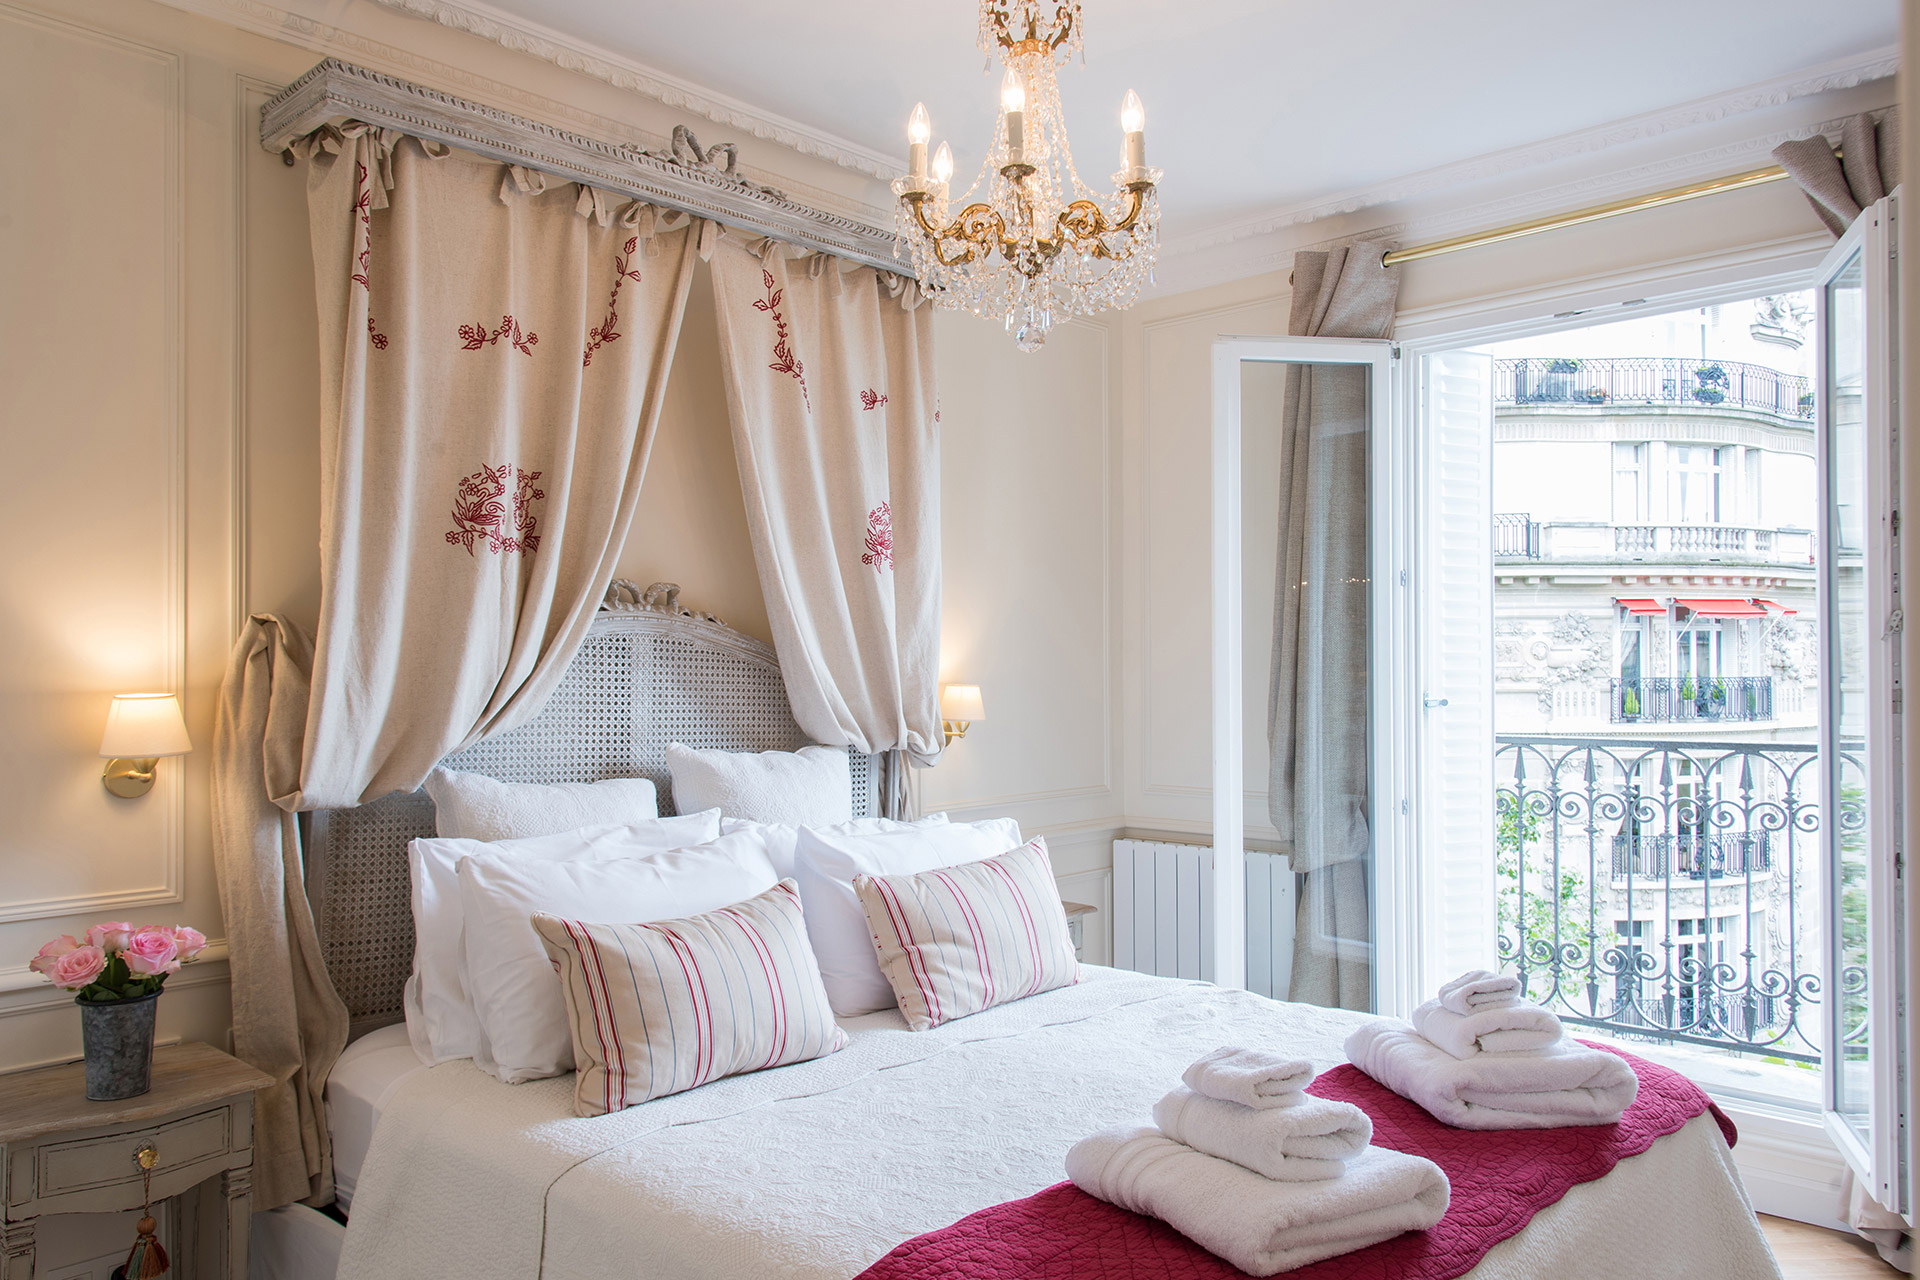 One Bedroom Paris Apartment - Merlot